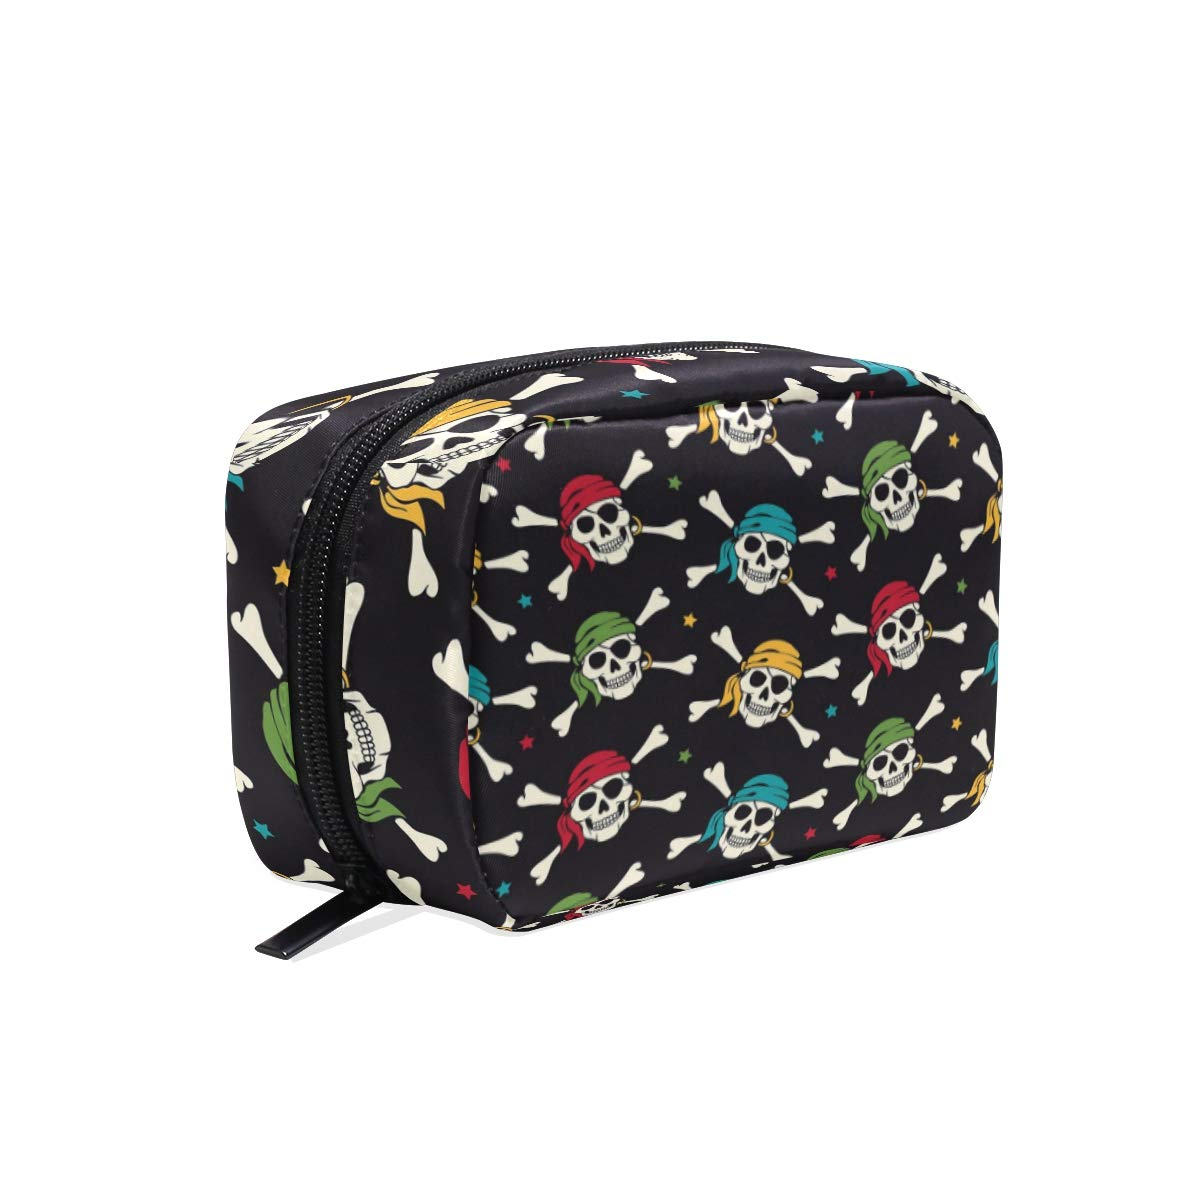 ALAZA Day of the Dead Skull Pirate Makeup Cosmetic Portable Pouch Bag Organizer Capacity Storage Bag Gift for Women Girls